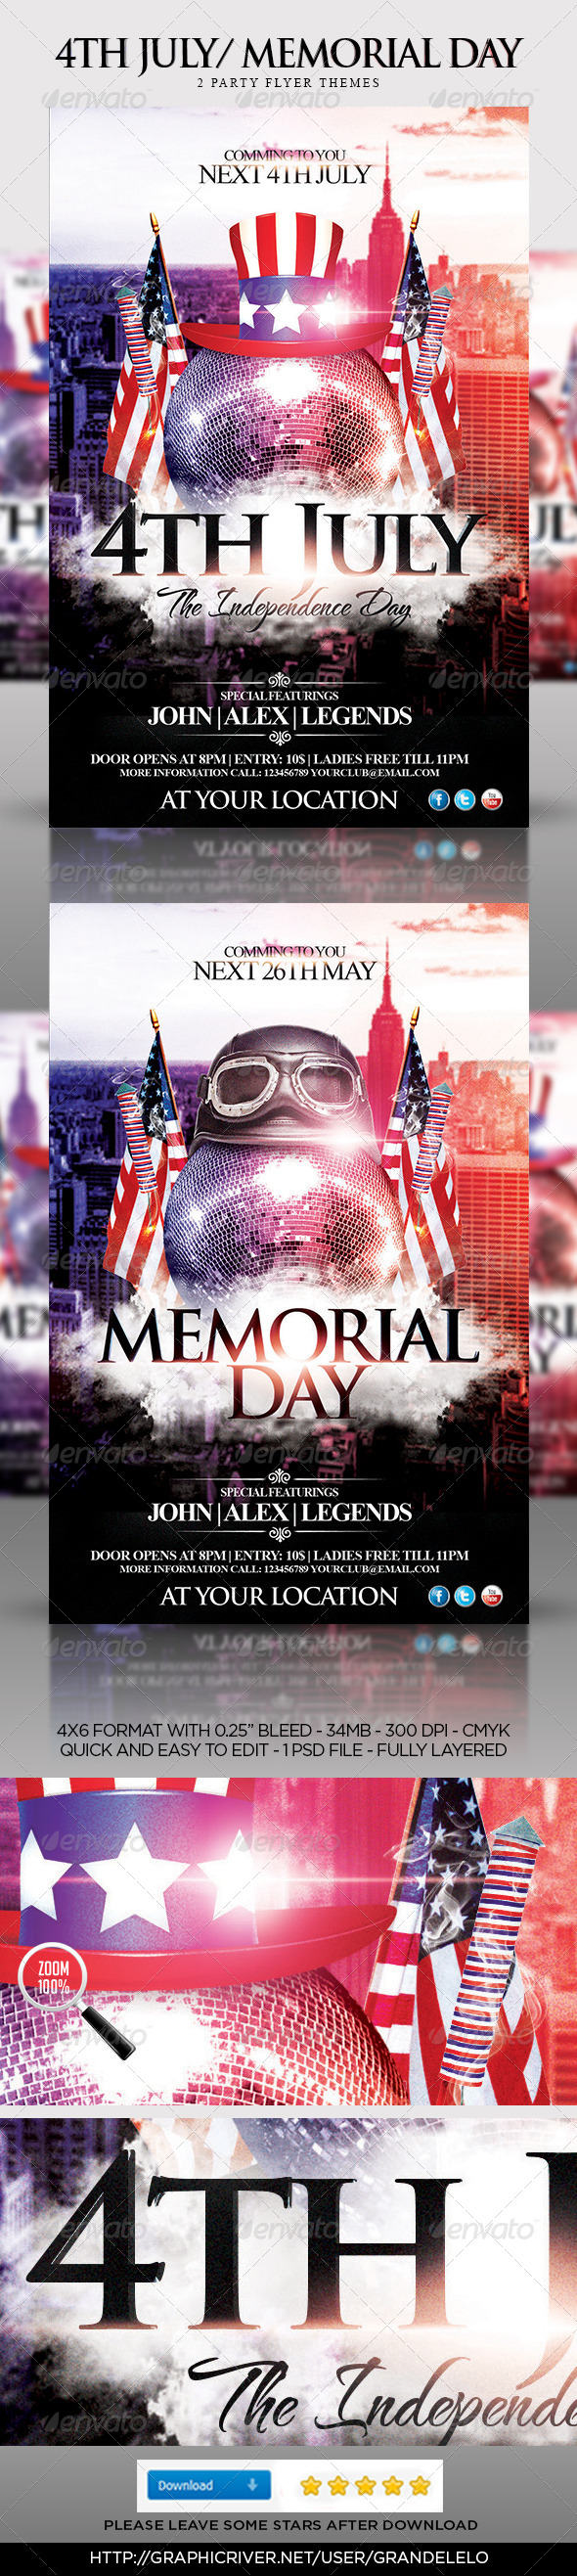 4th July Memorial Day Party Flyer Template